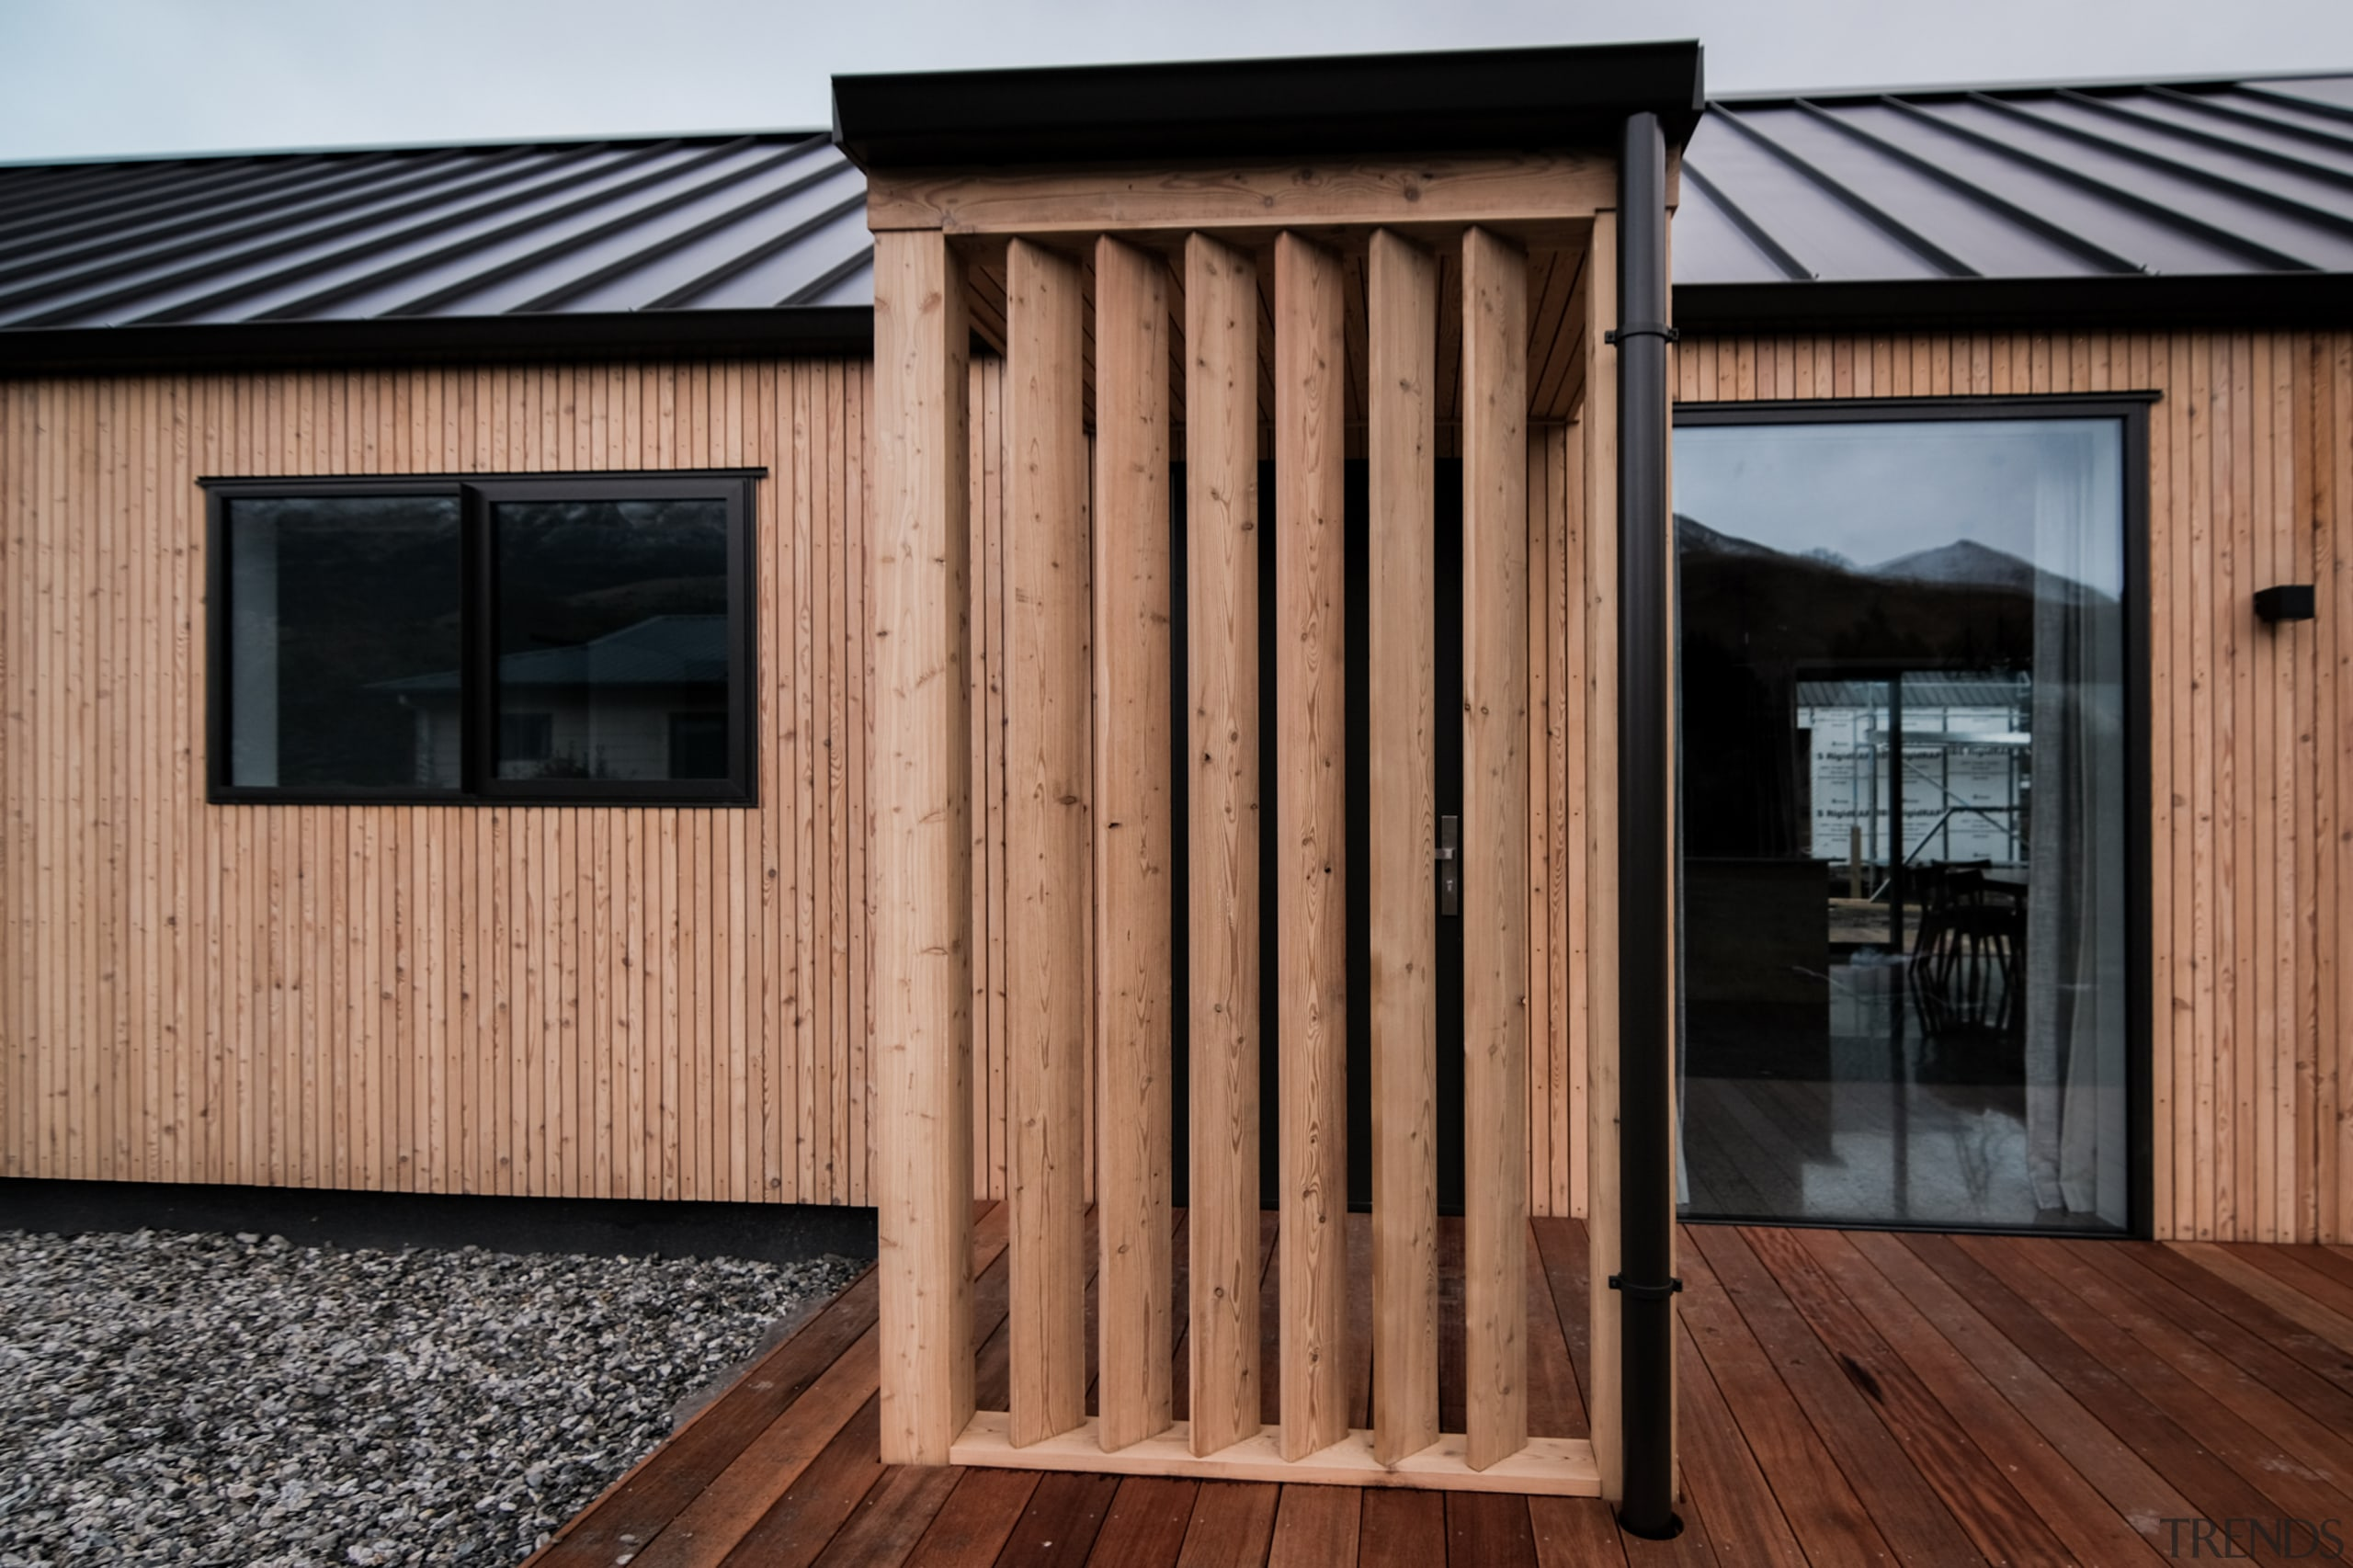 The imported Siberian larch cladding is custom milled